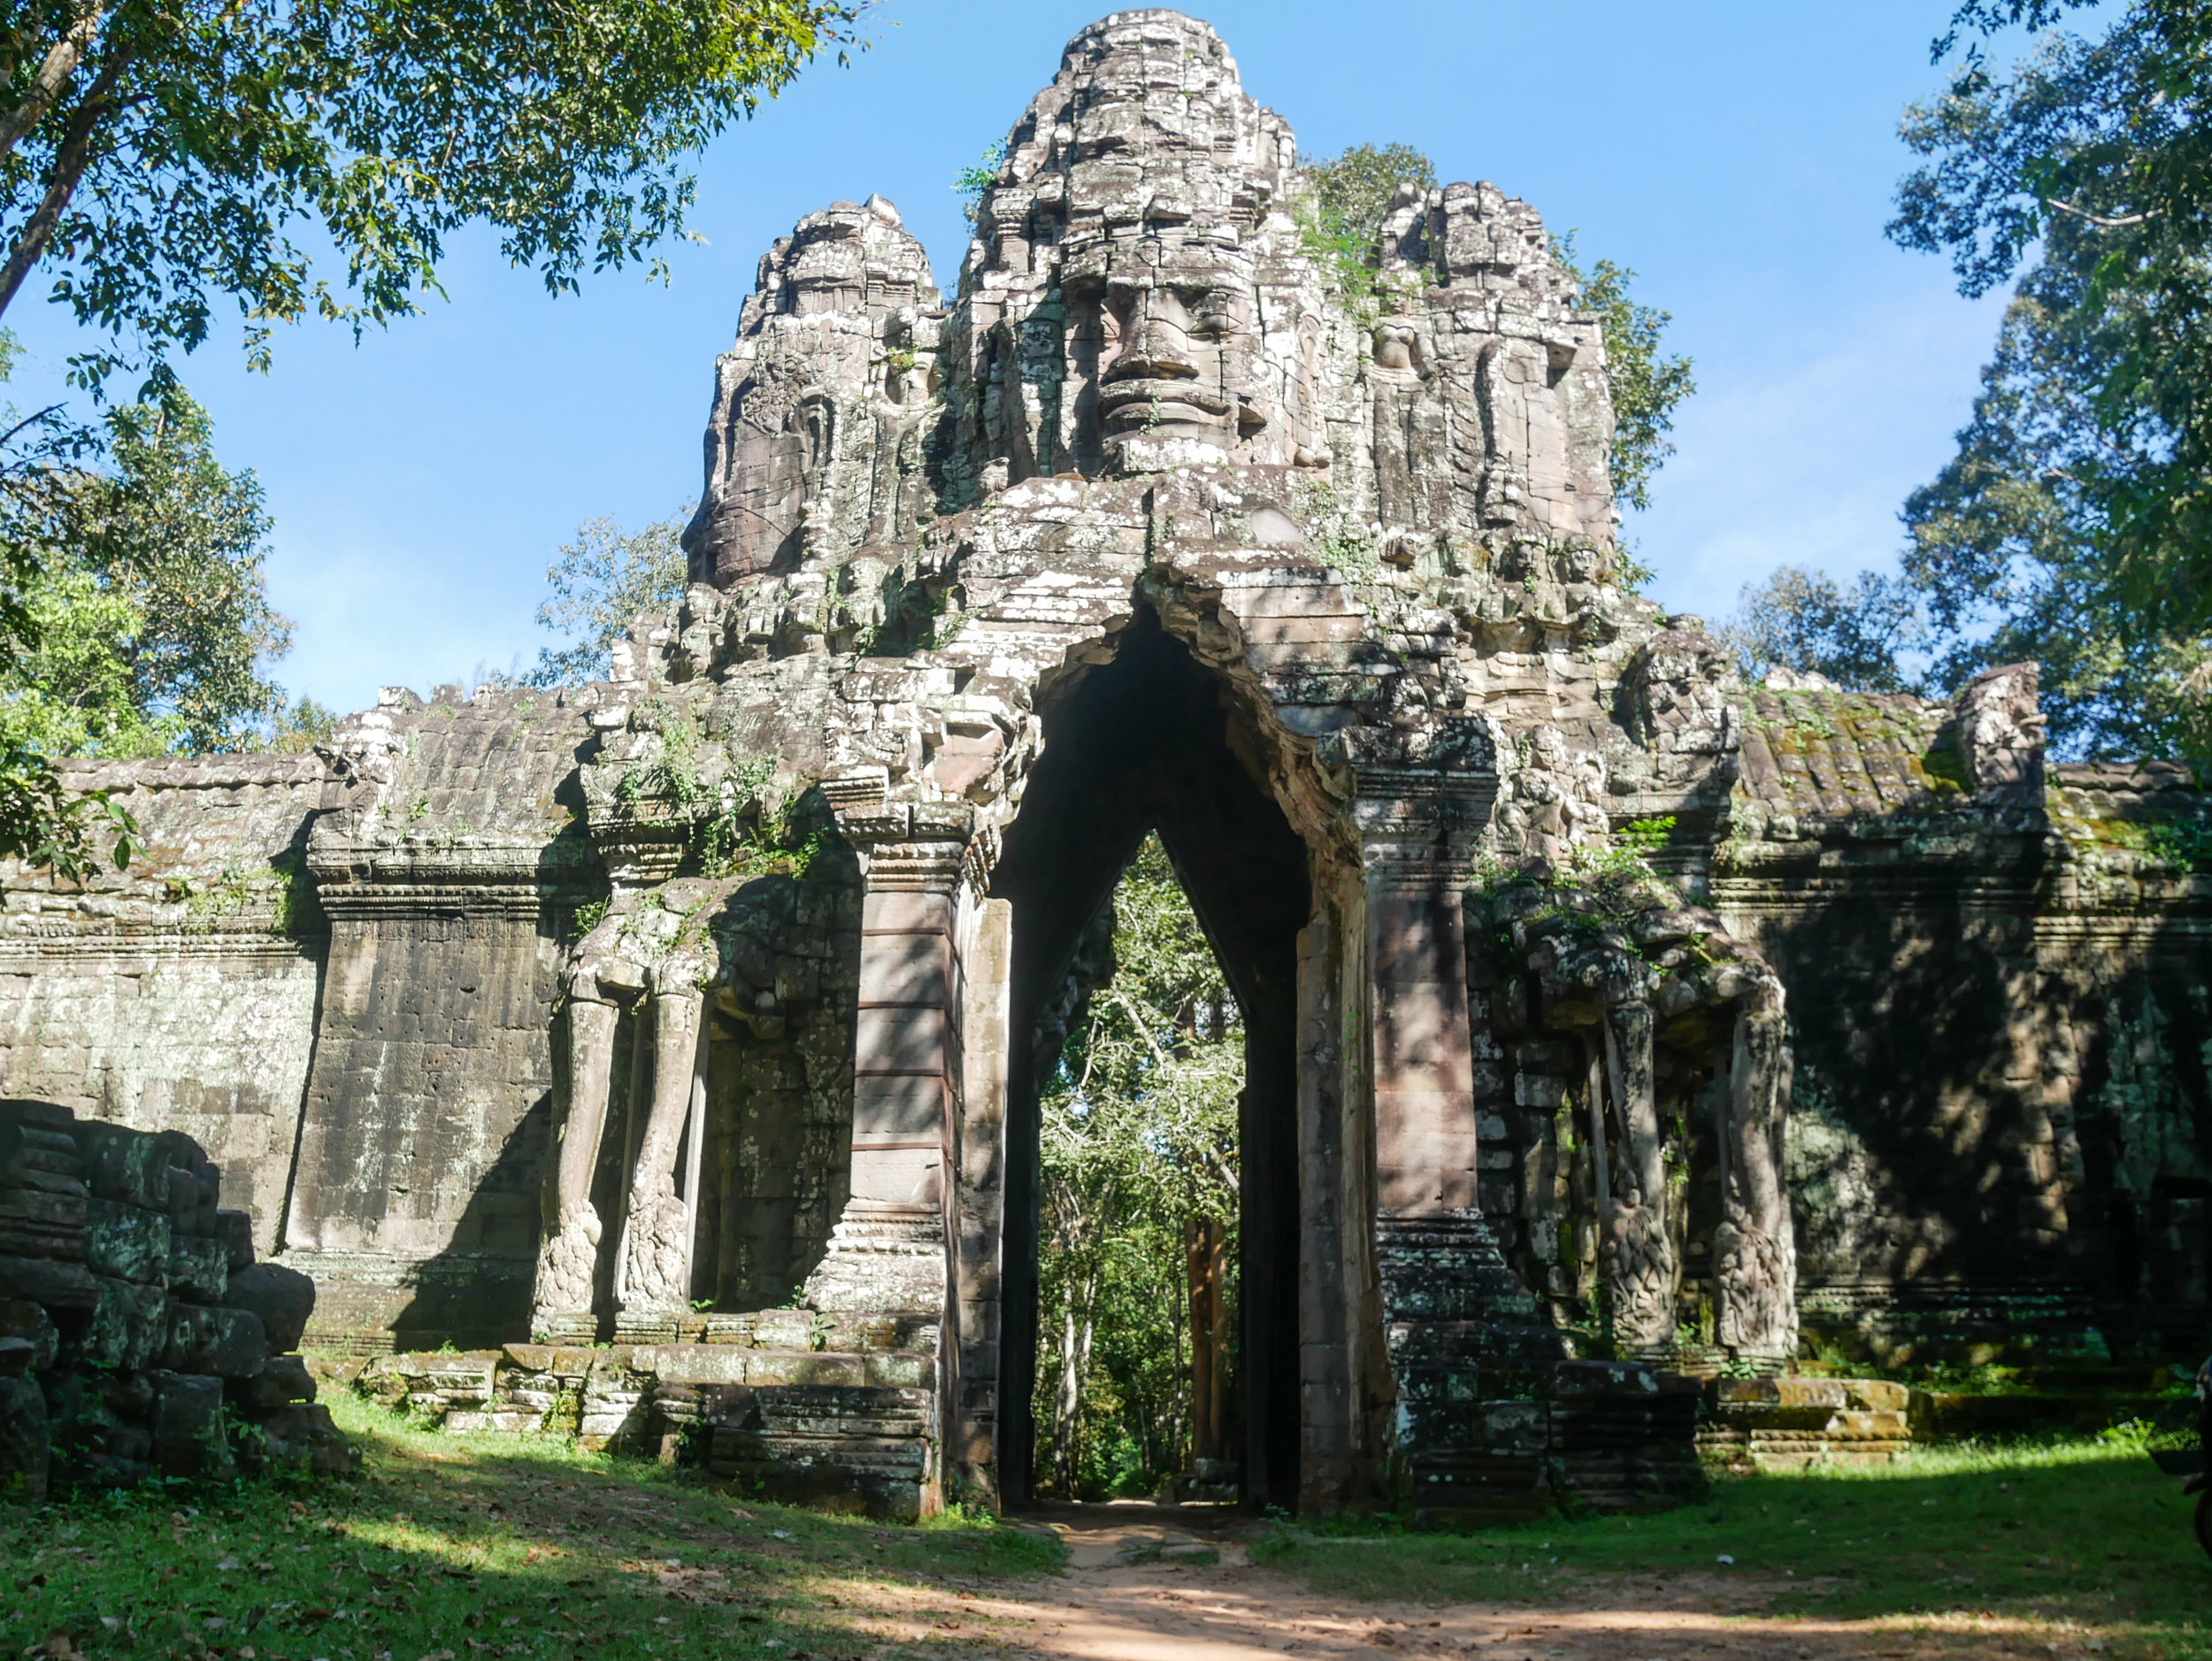 Copy of Angkor Wat